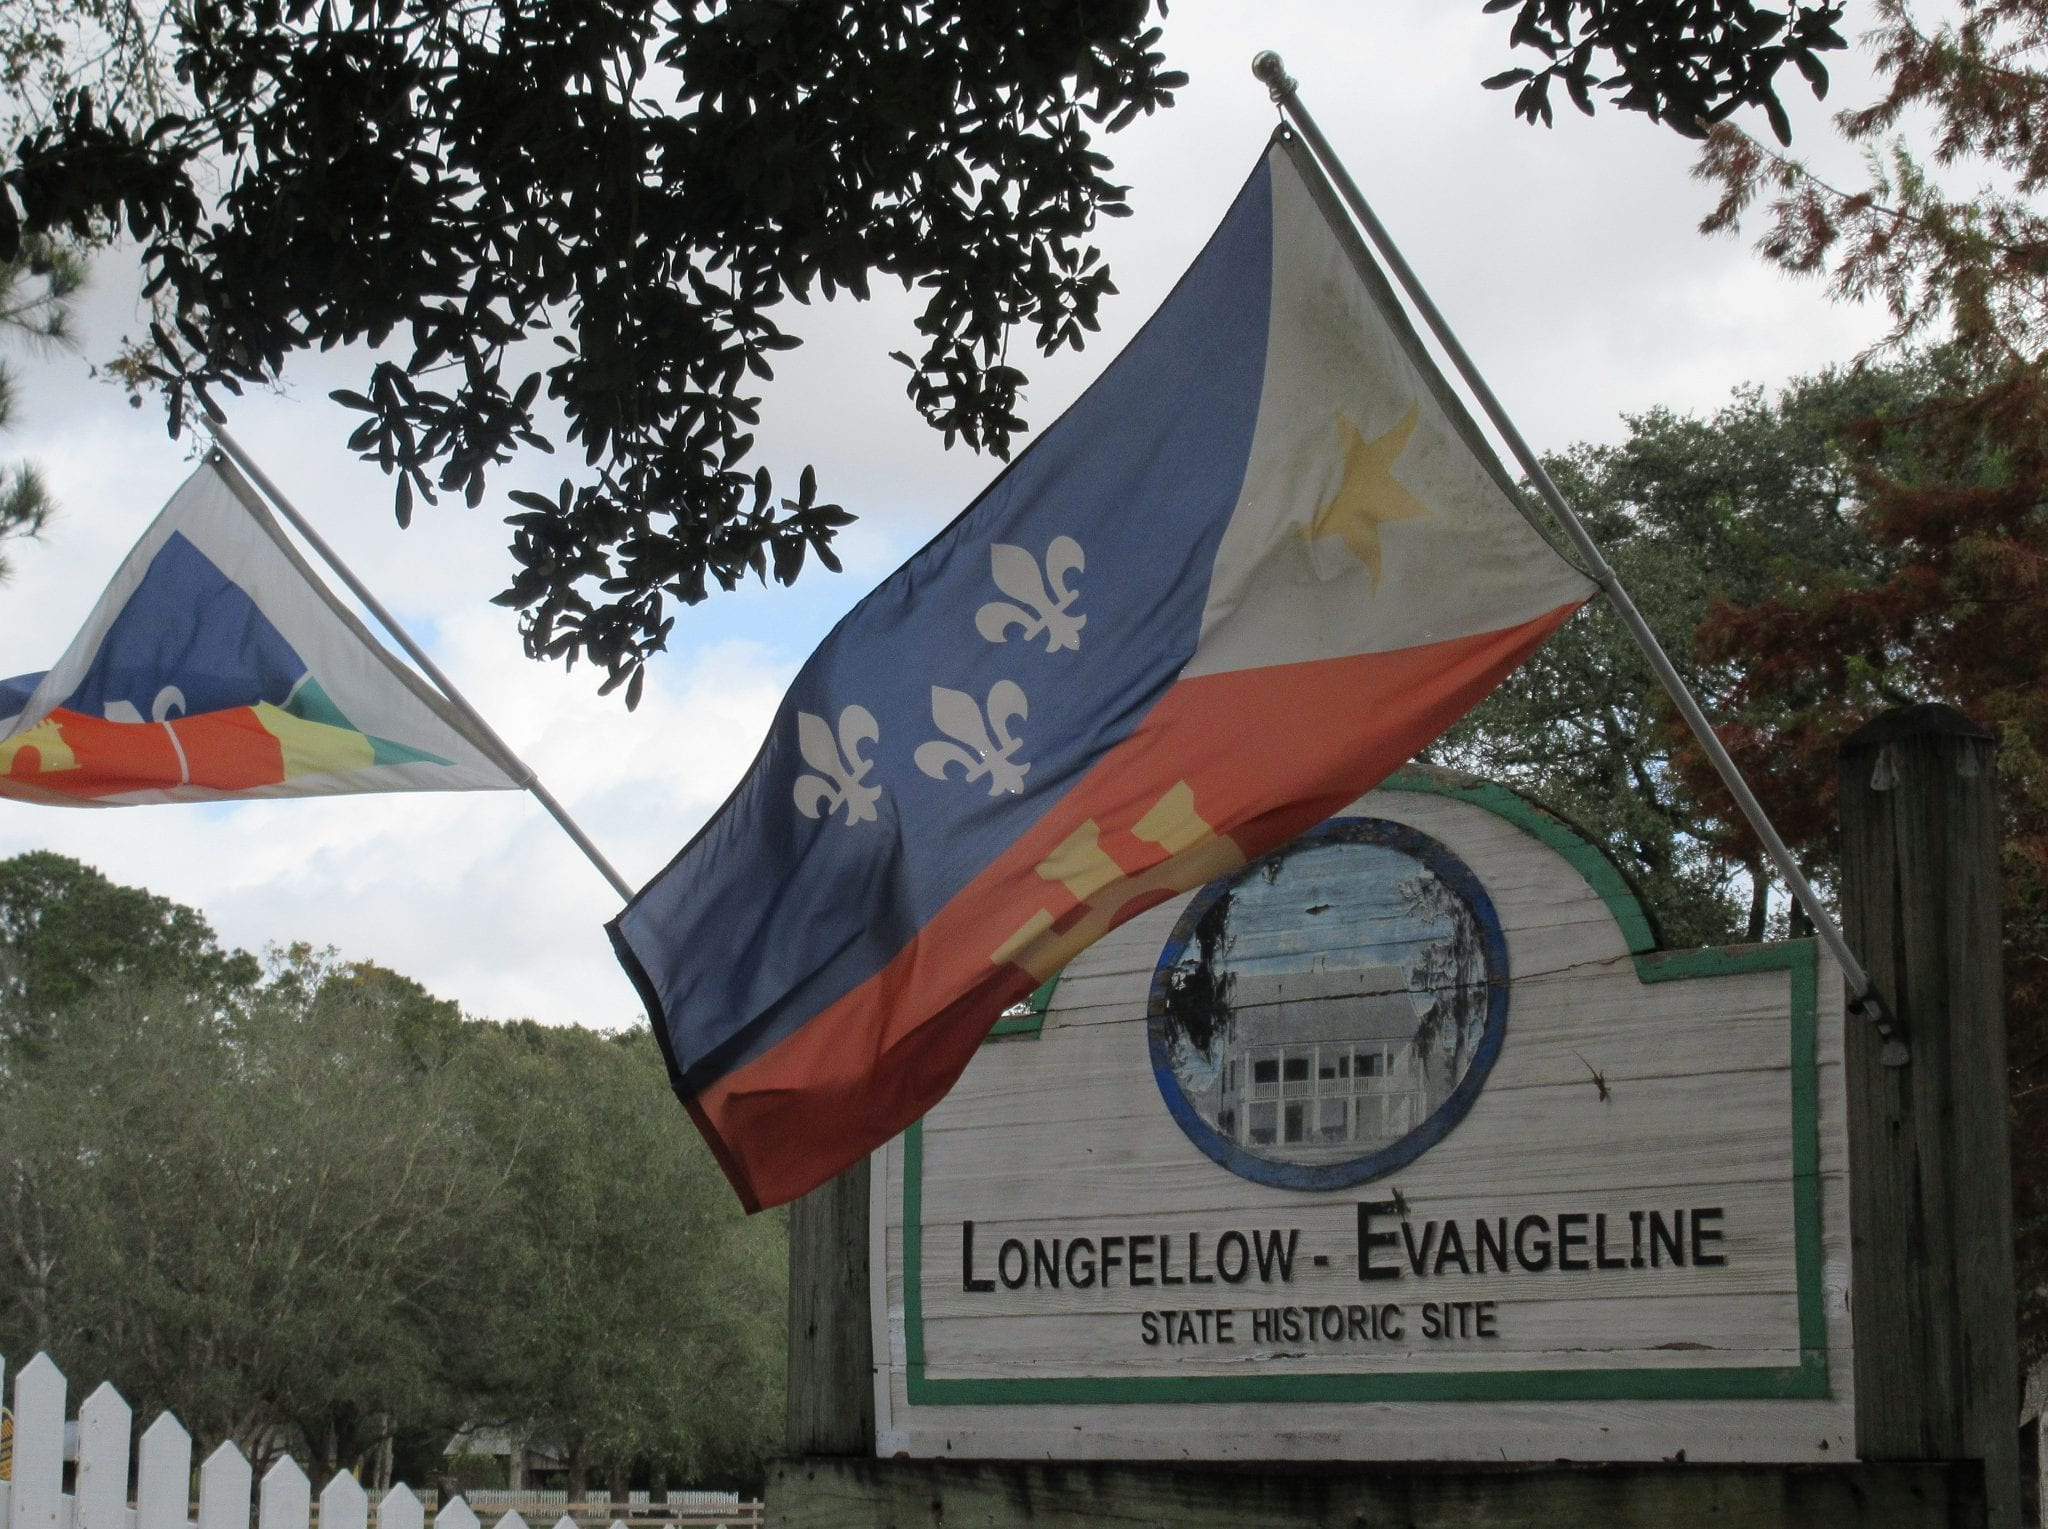 longfellow evangeline historic site welcome sign flags magnolia tree